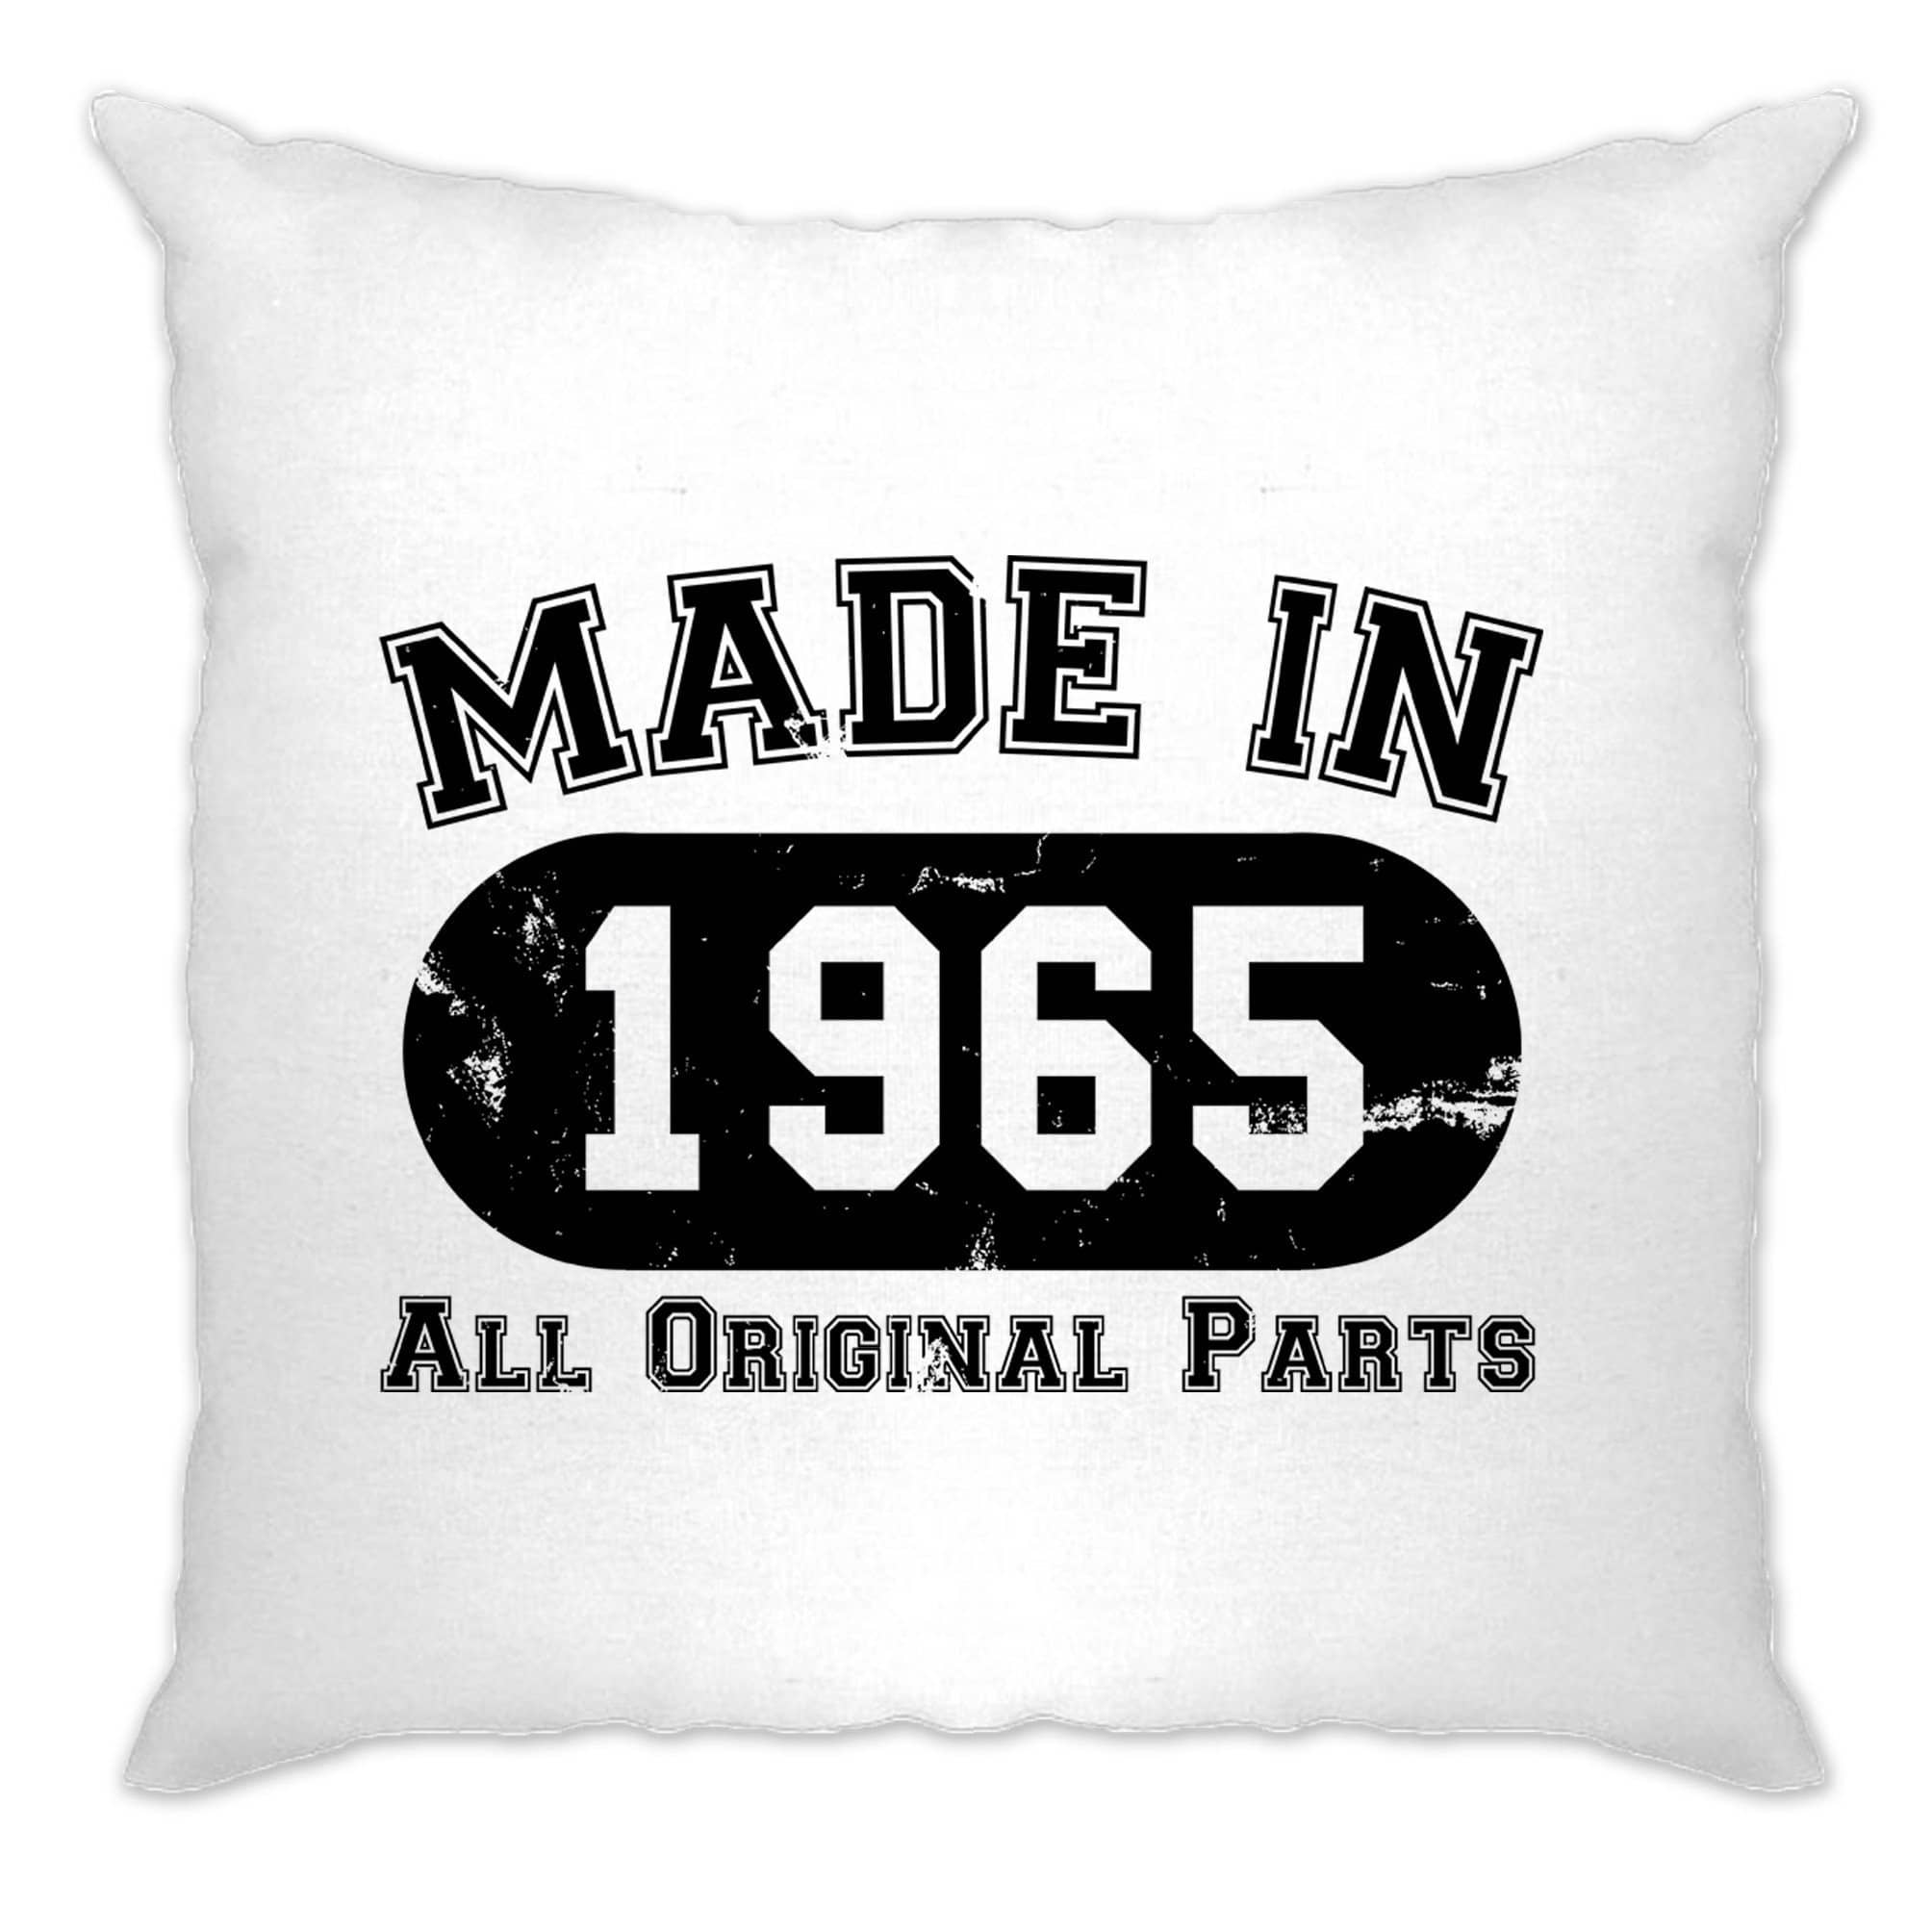 Made in 1965 All Original Parts Cushion Cover [Distressed]